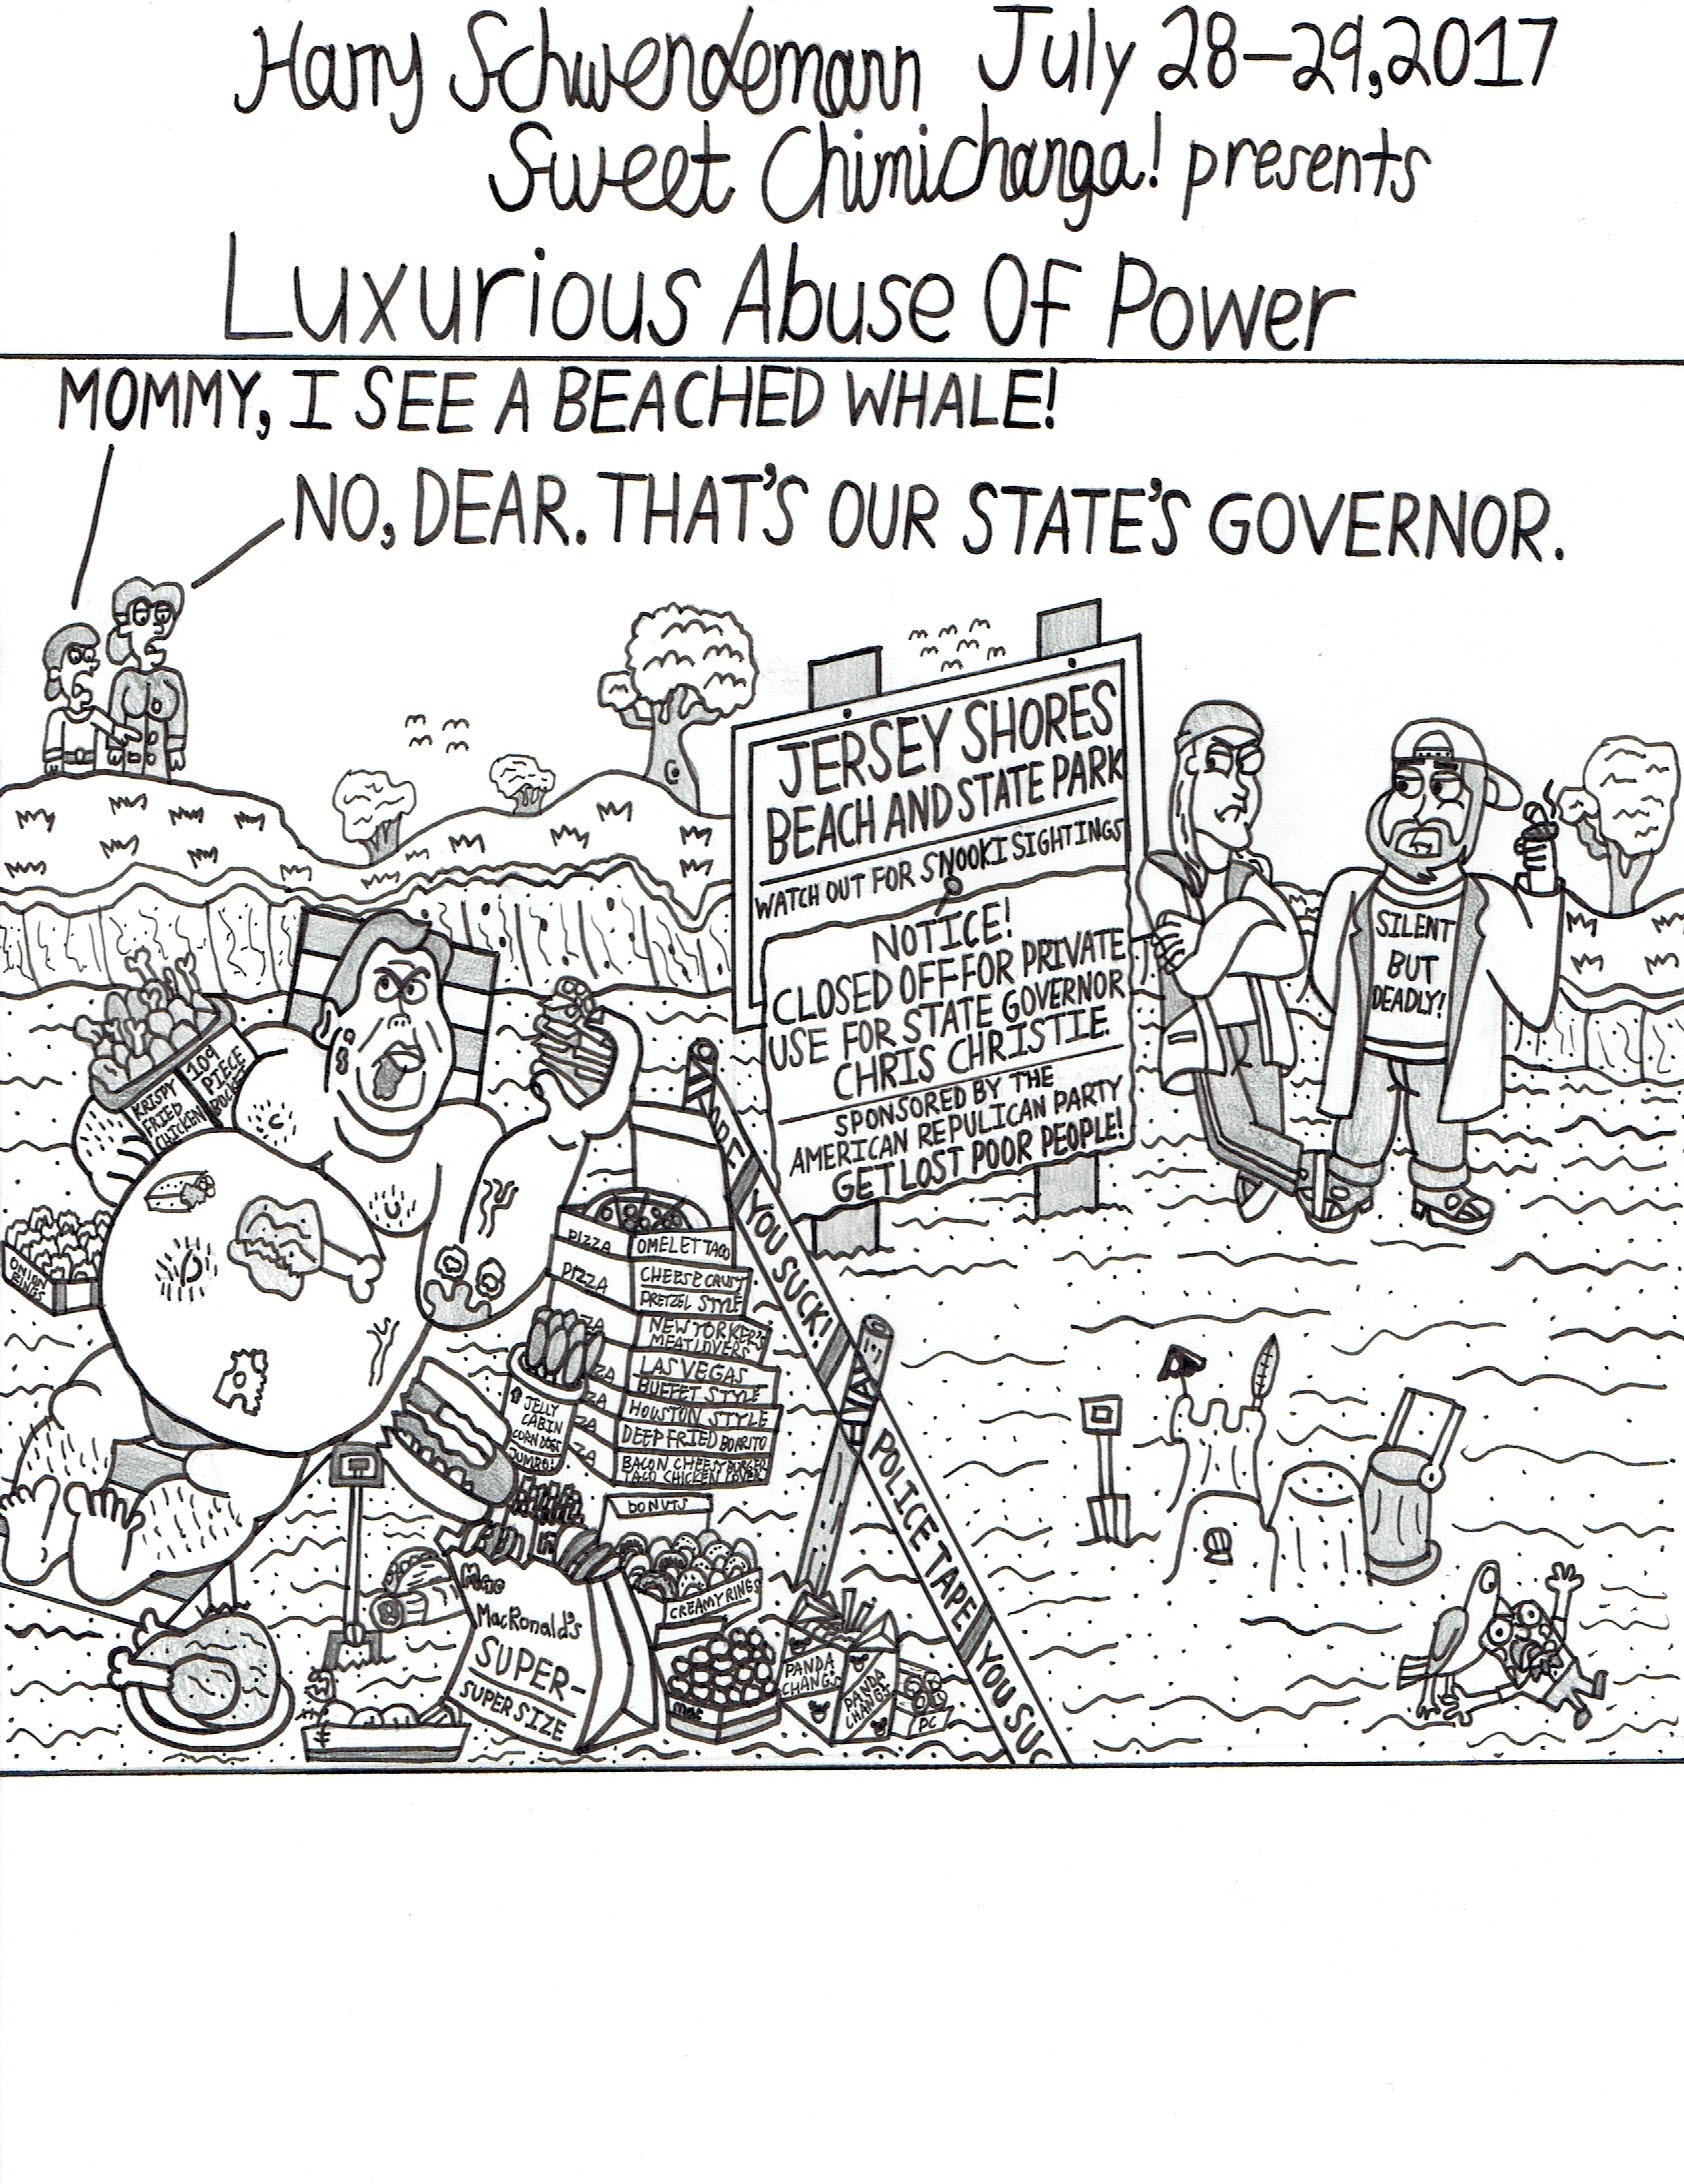 Luxurious Abuse of Power